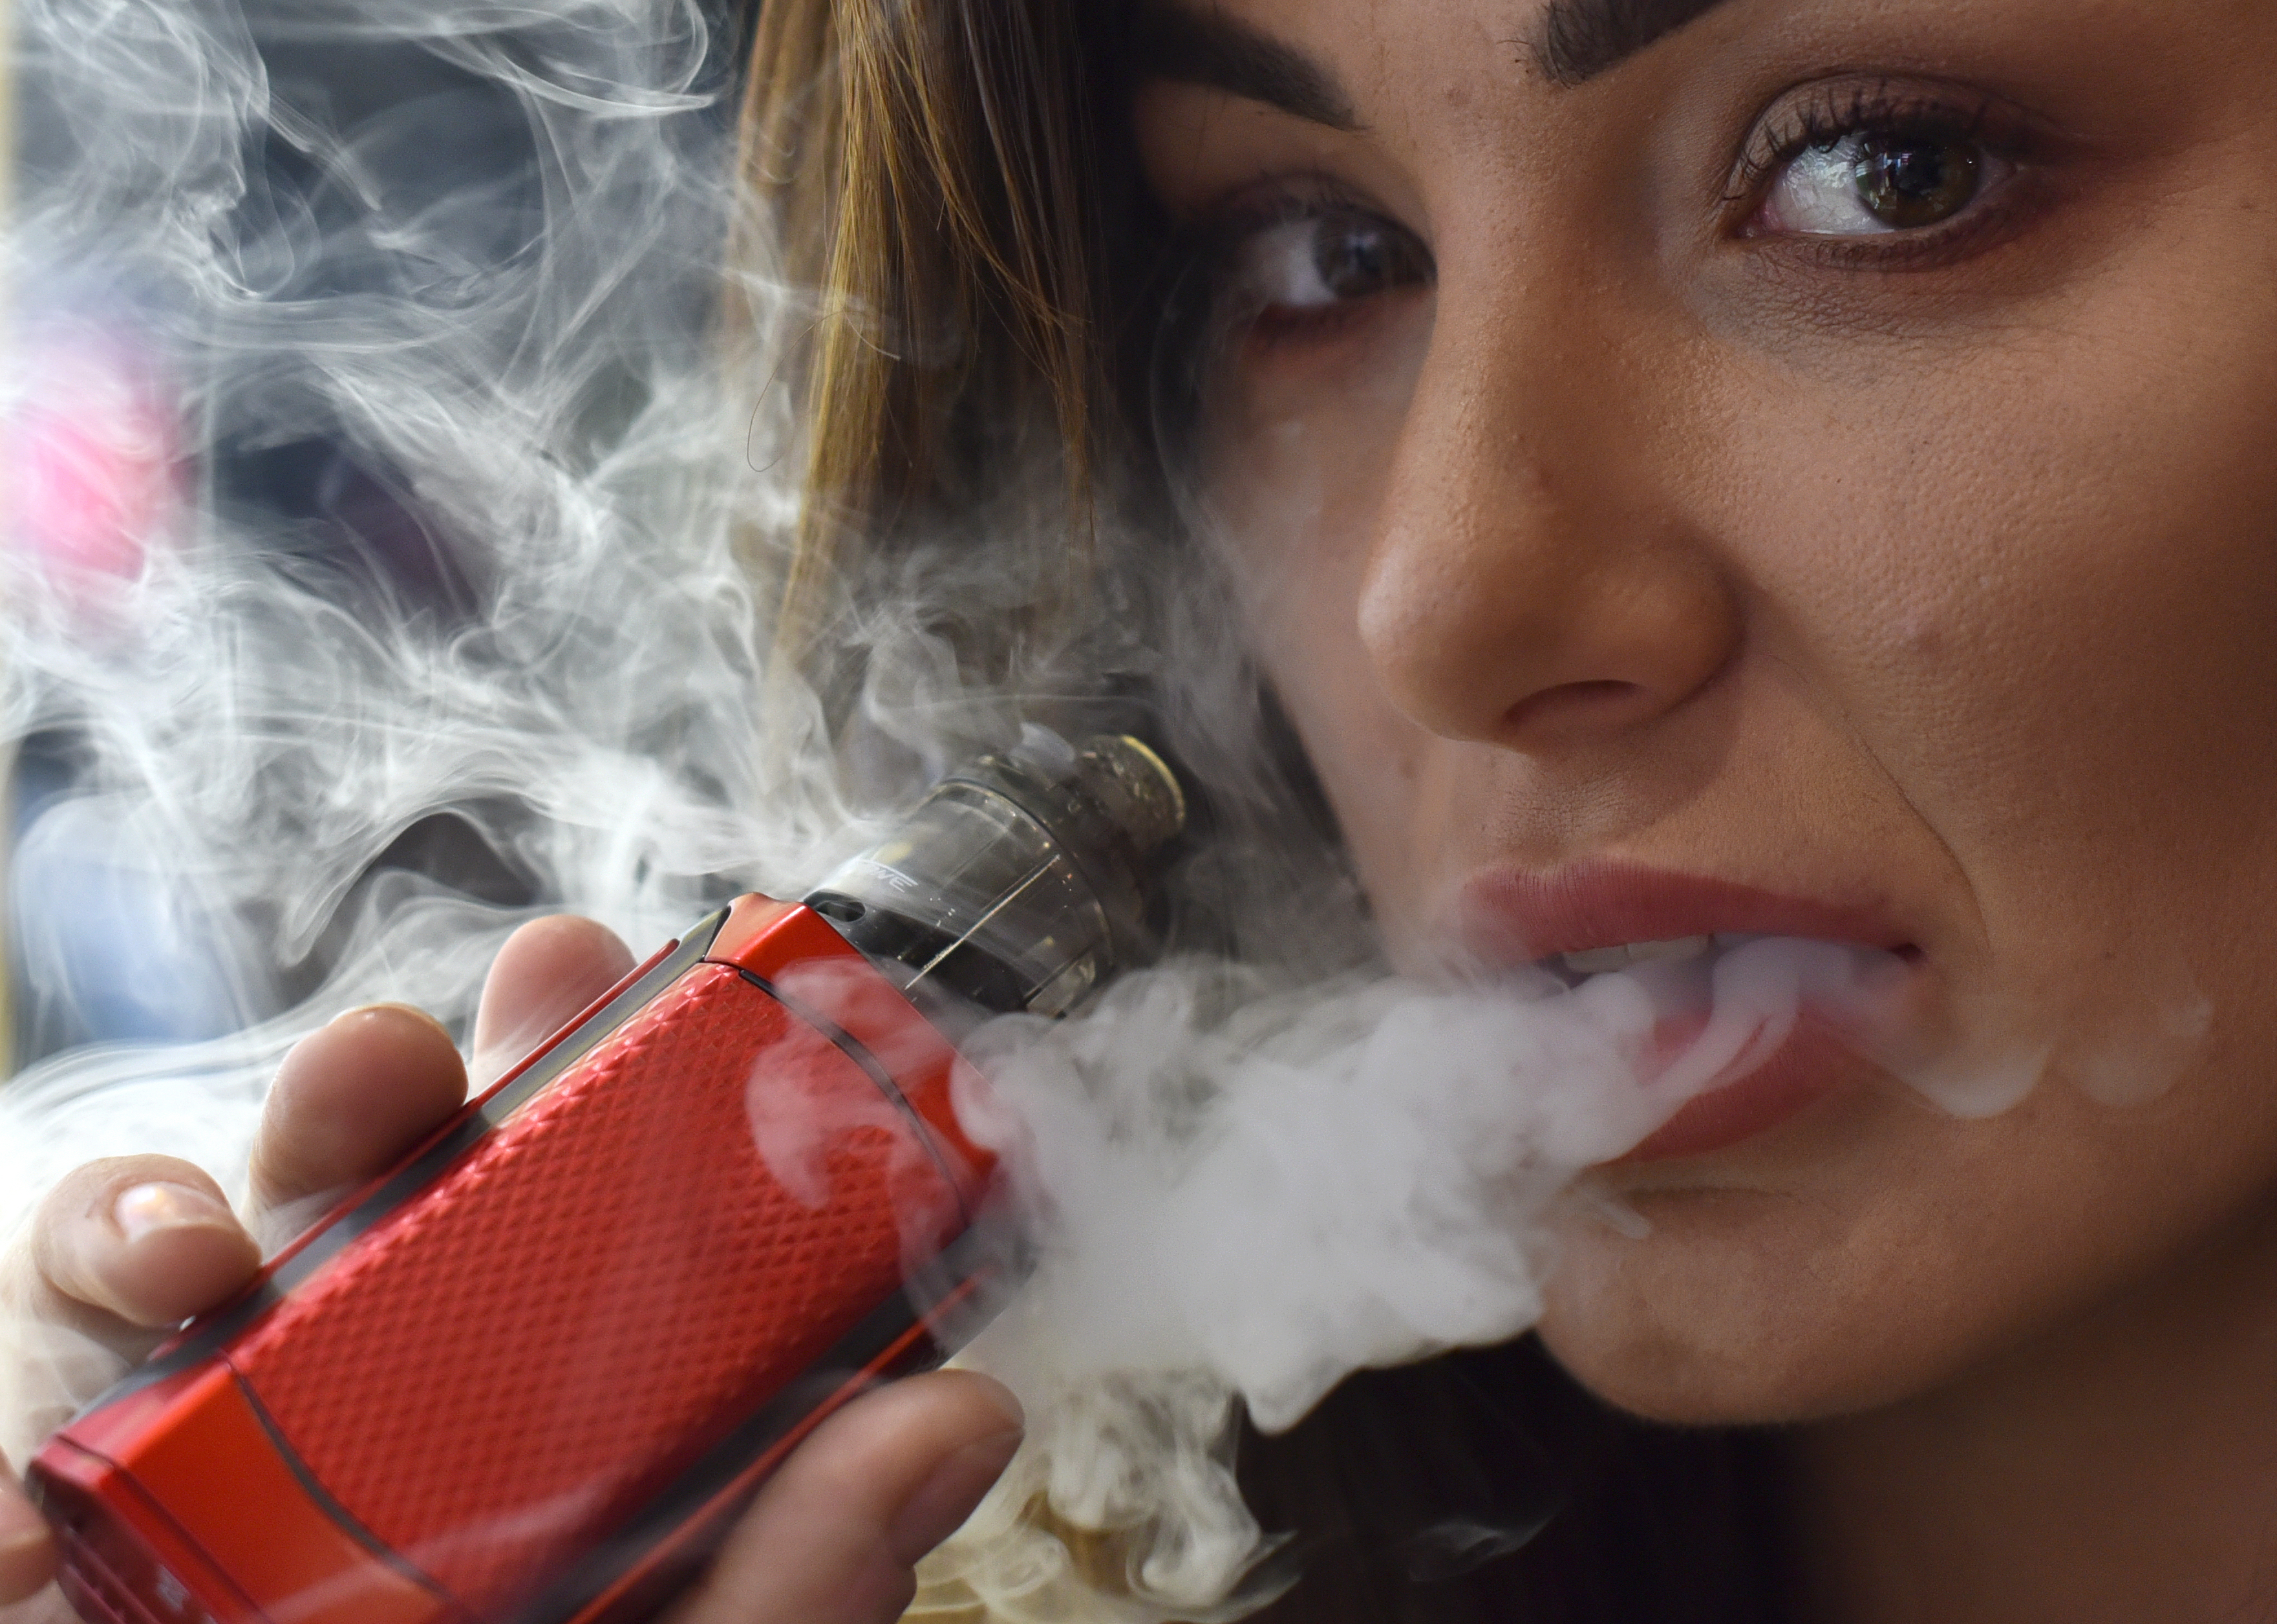 LONDON, ENGLAND - APRIL 12: Promotional person vapes on the Reds, Ejuice stand during Vape Jam 2019 at ExCel on April 12, 2019 in London, England. Vape Jam UK, the premier Electronic Cigarette and E-Liquid trade show brings key industry players, leading manufacturers, consumers, hobbyists and people looking for an alternative to tobacco. (Photo by John Keeble/Getty Images)